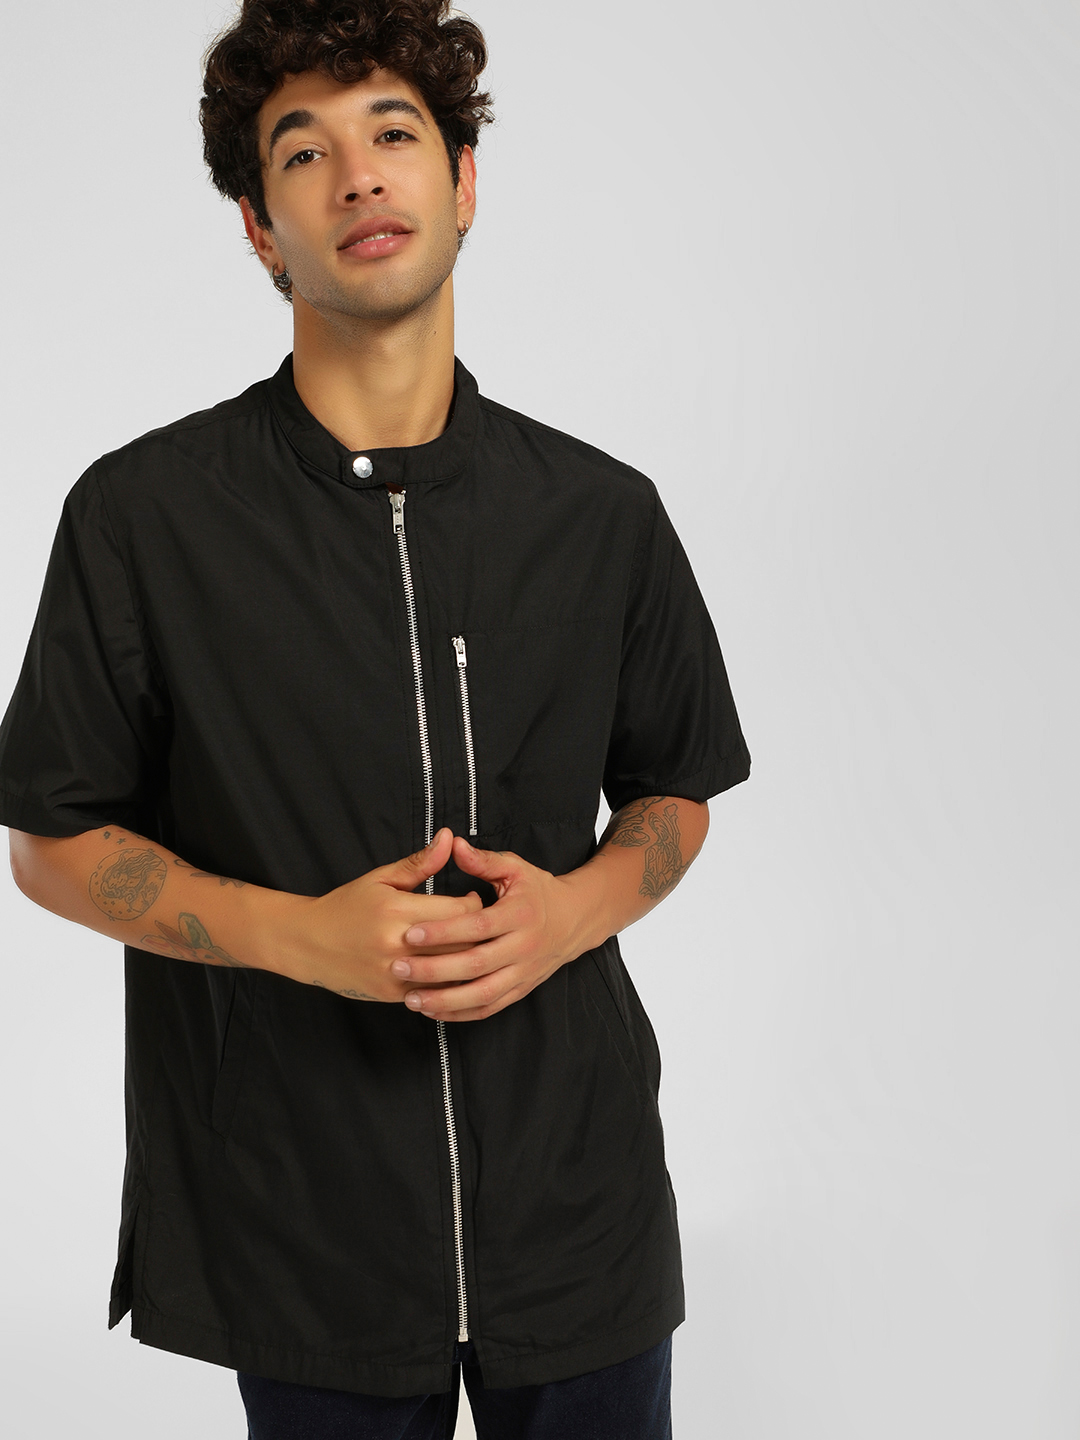 SKULT By Shahid Kapoor Black Chinese Collar Casual Shirt 1